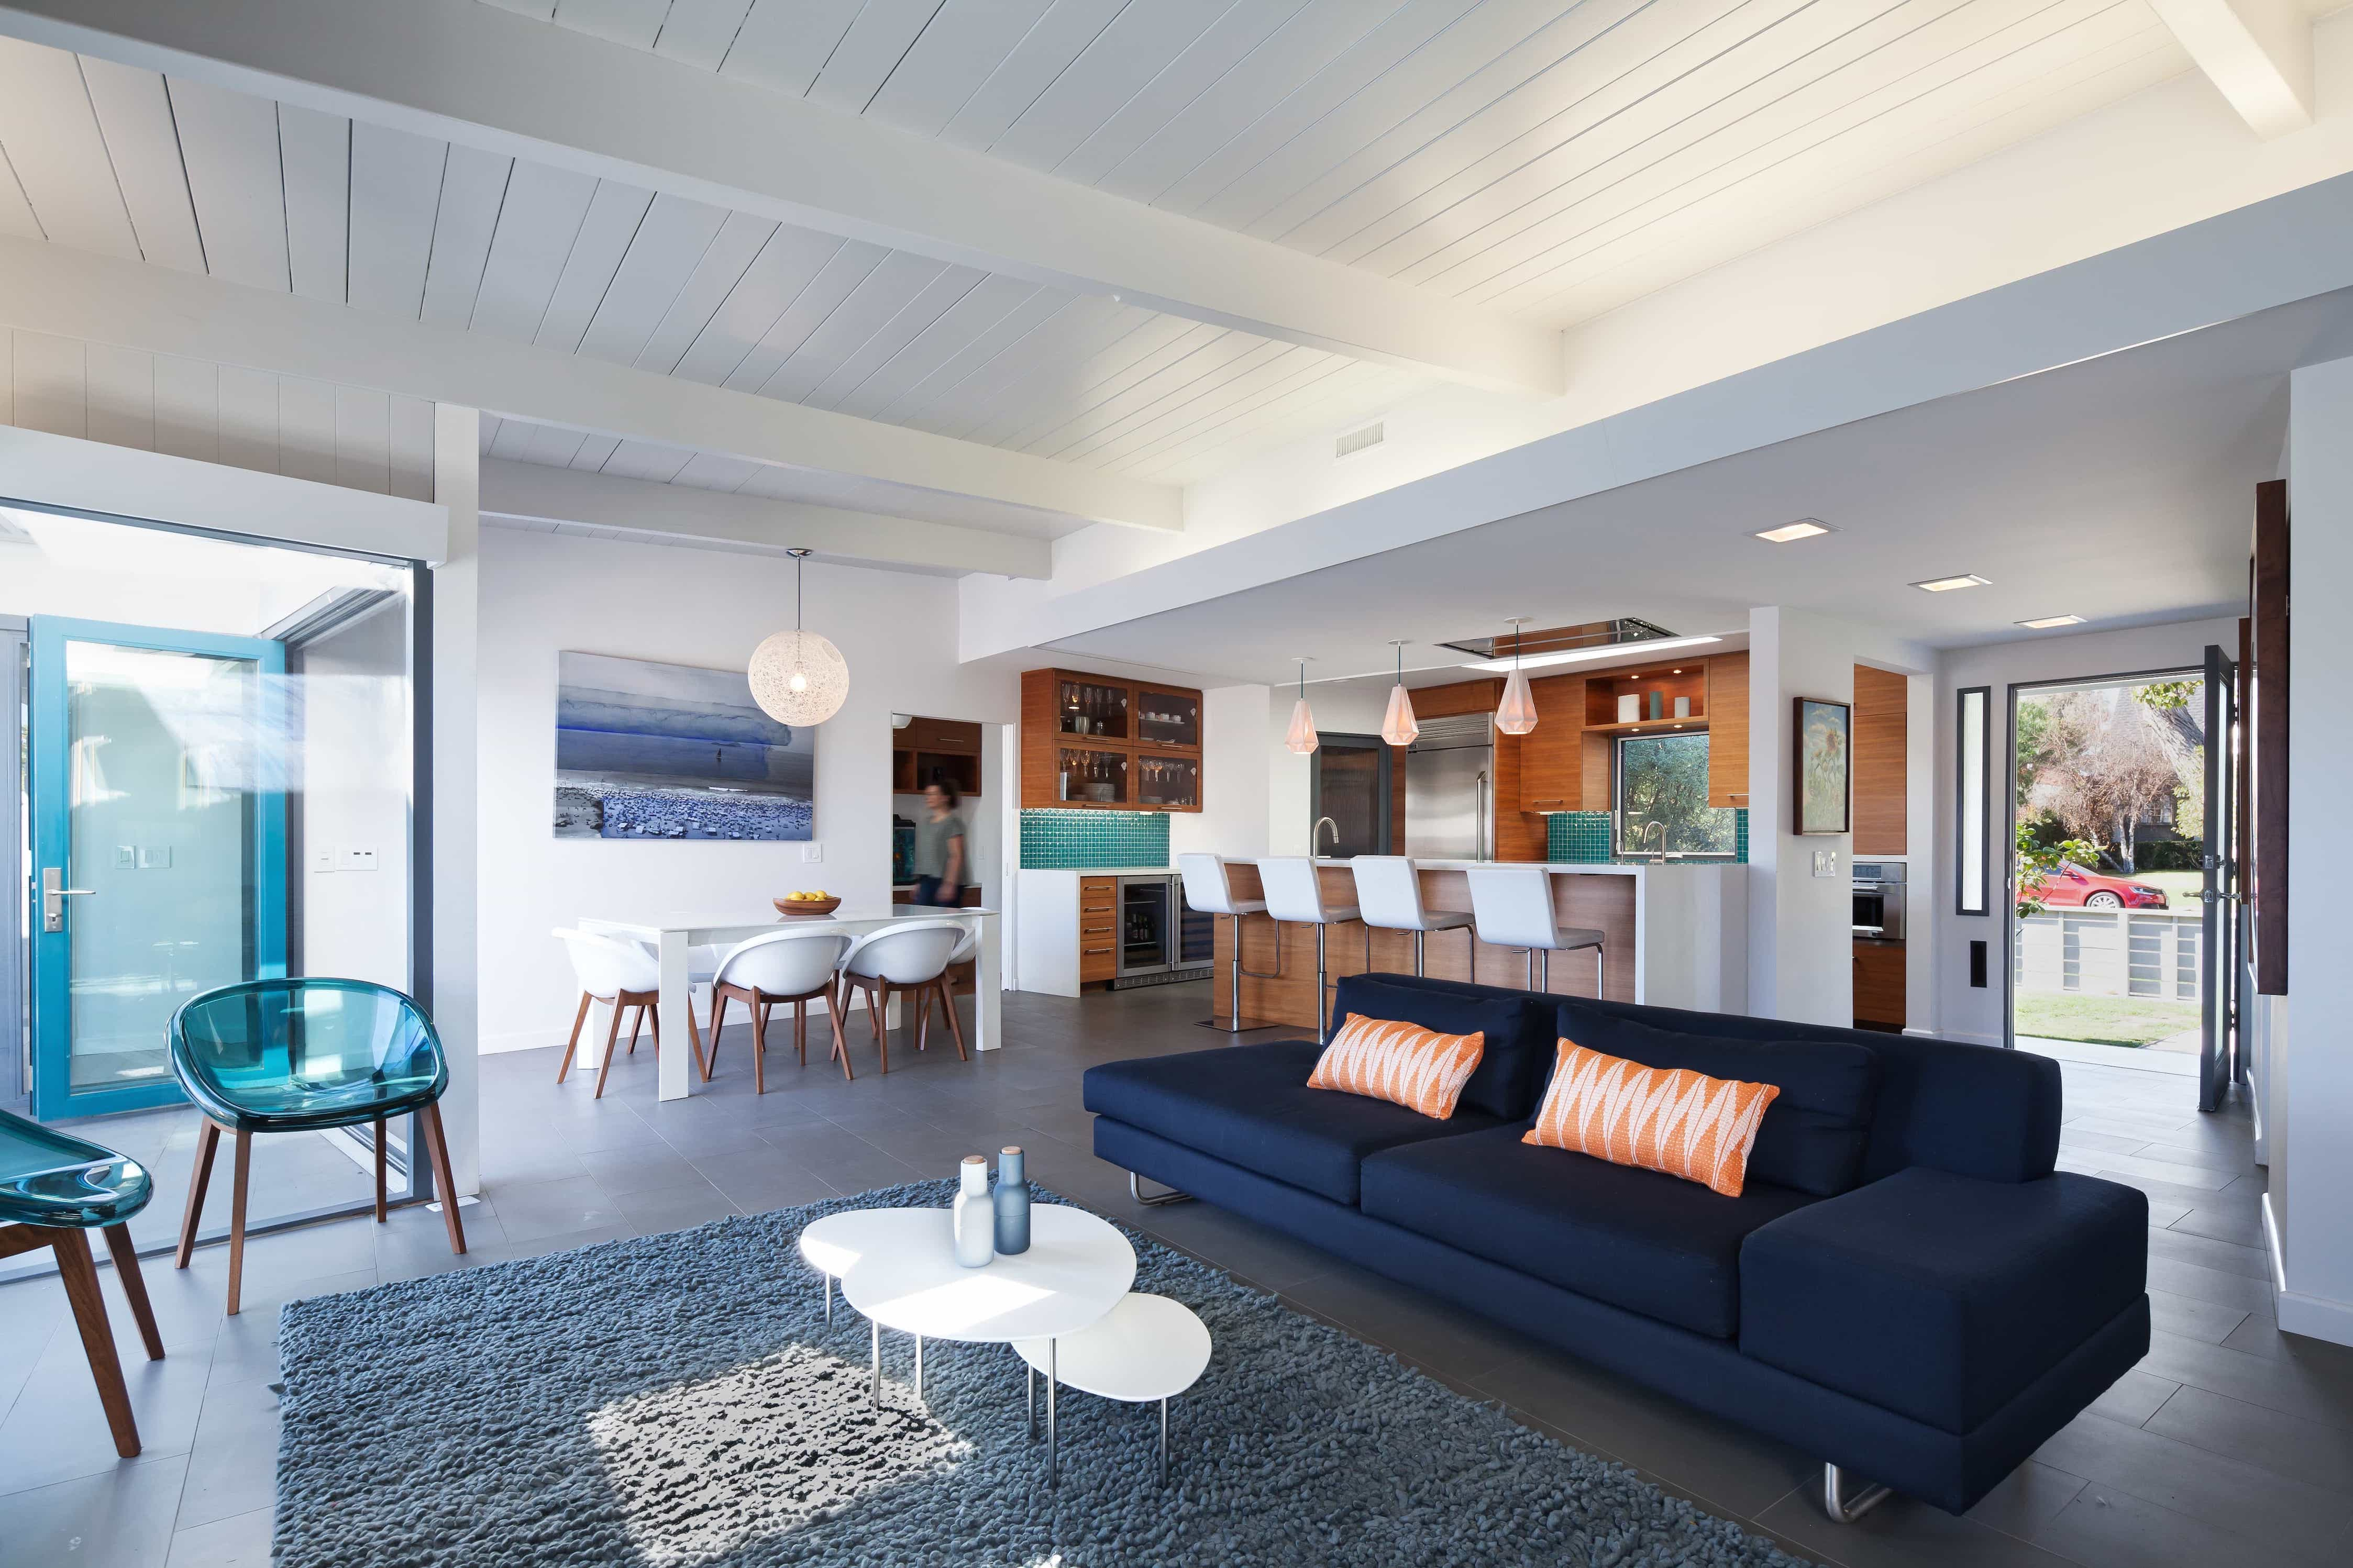 Navy Blue Shag Rug And Sofa In Open Floor Plan Modern Living Room With Exposed Ceiling Beams And Blue Accents (Image 12 of 15)